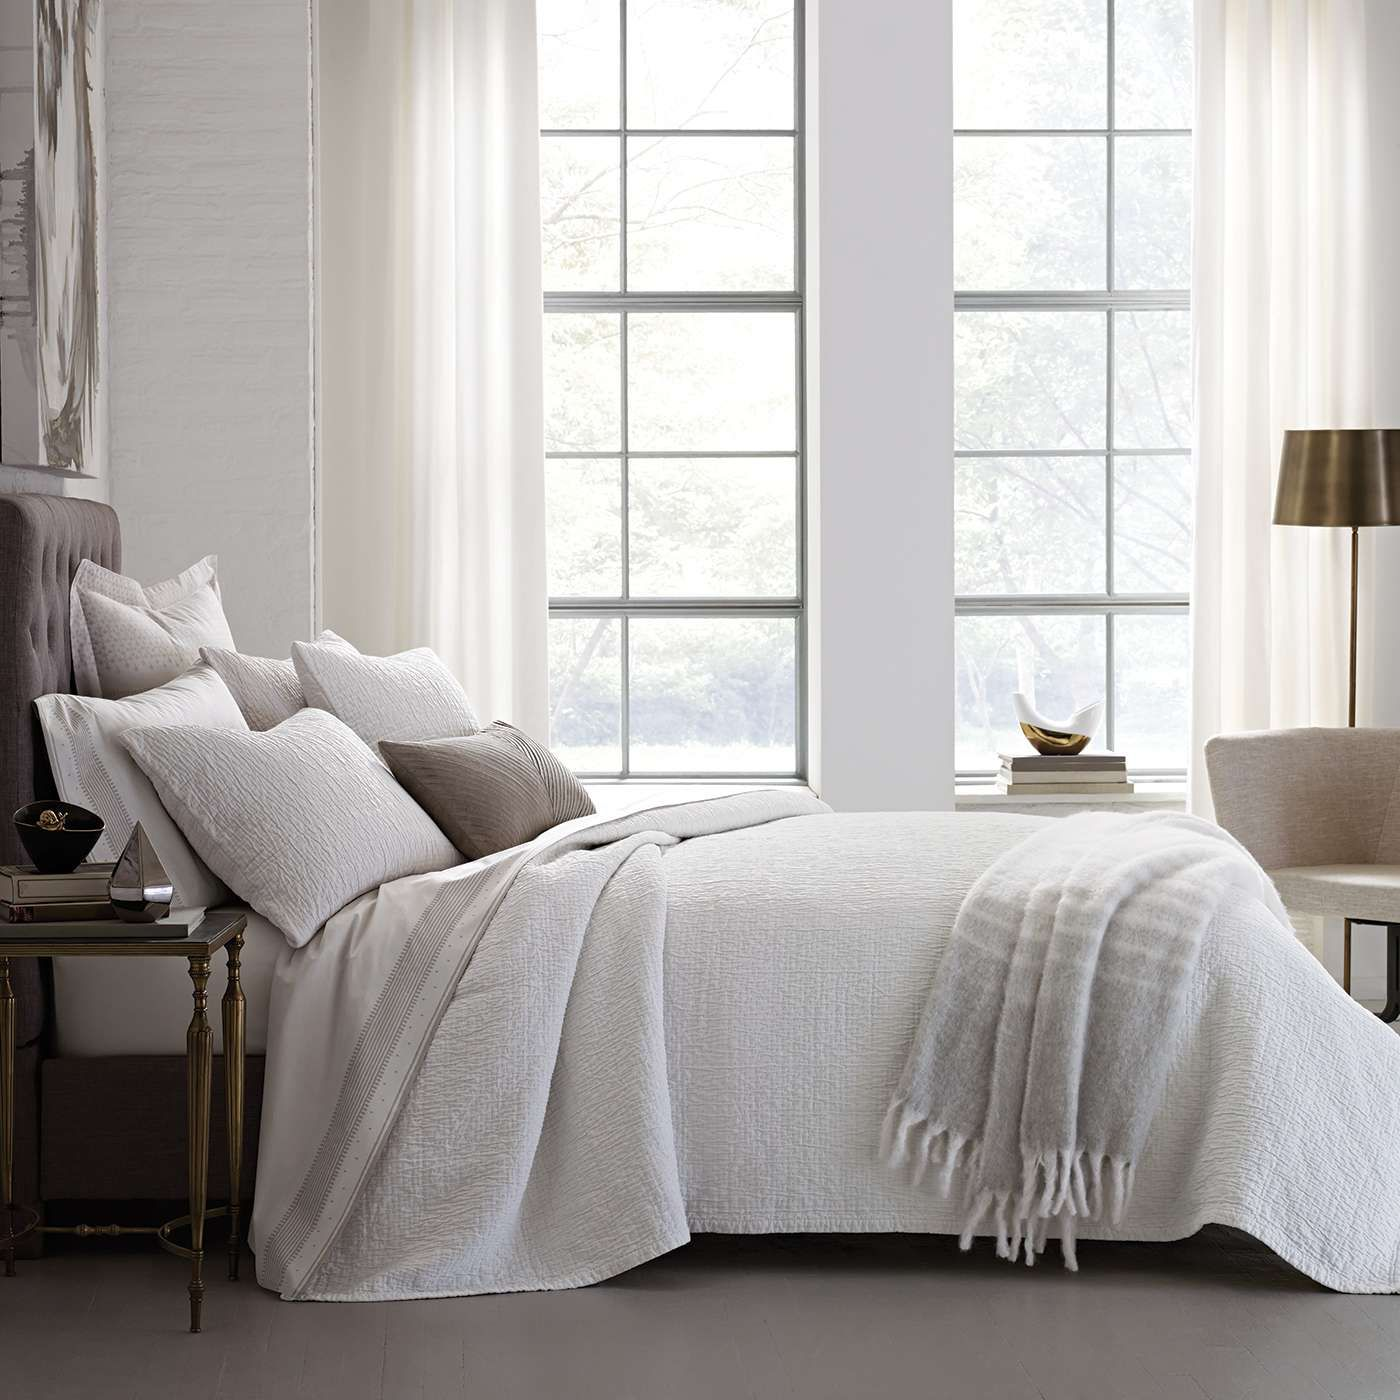 Decorating Ideas For A Modern Guest Room Guest Room Decor Home